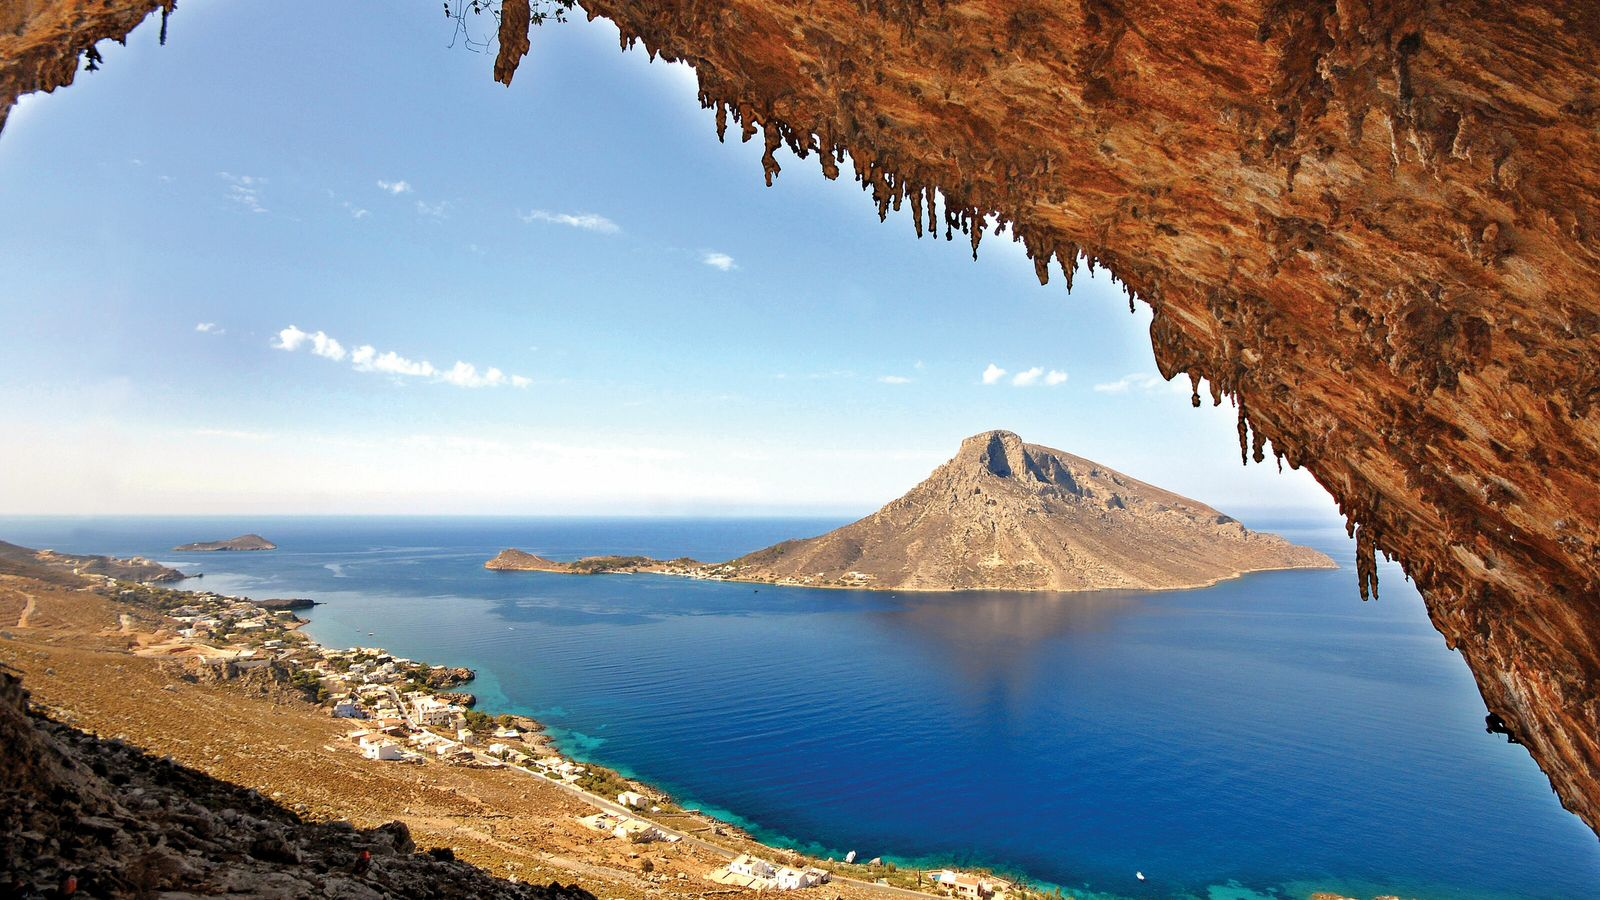 In Kalymnos, there are over 3,500 rock climbing routes to be tackled, and the best locations ...